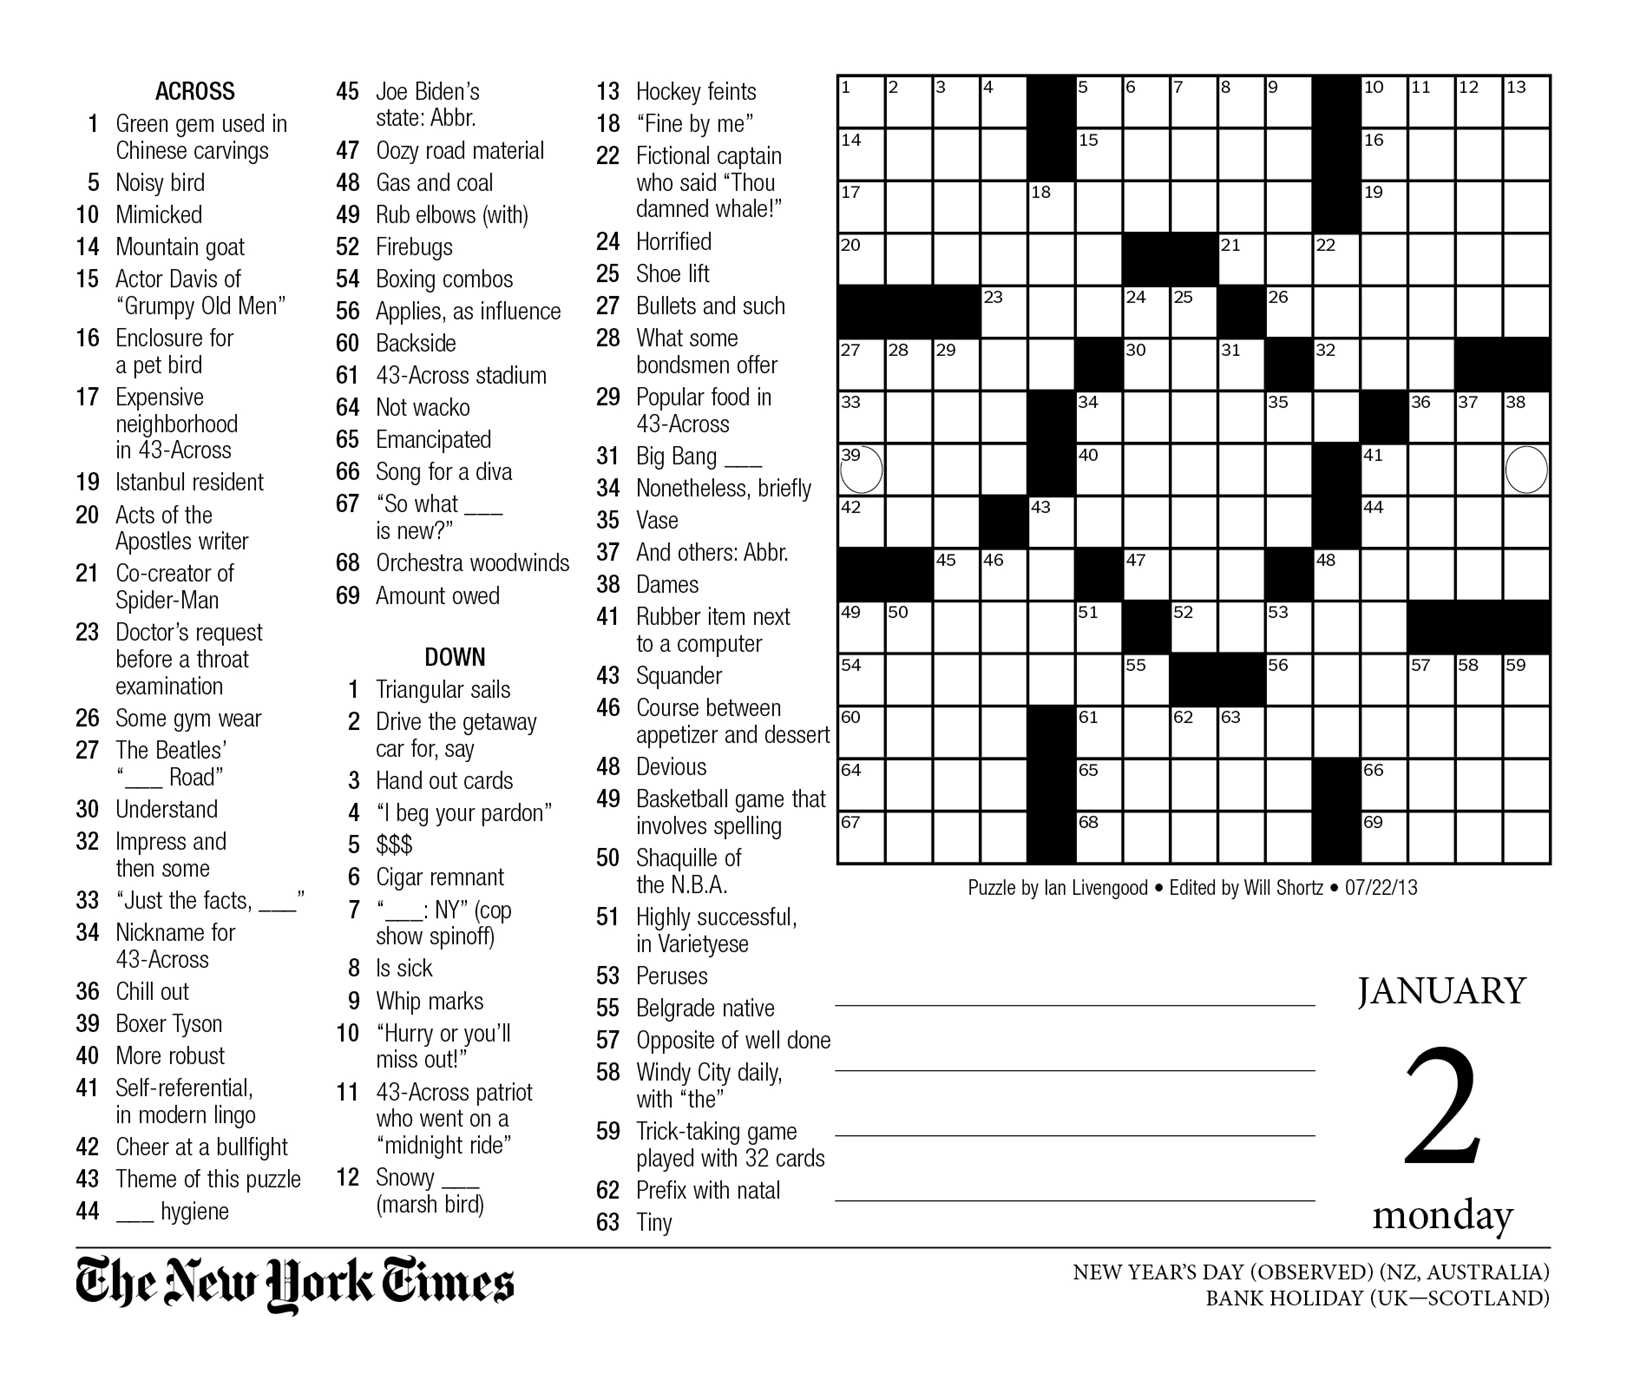 picture relating to Printable Ny Times Crossword Puzzles identified as The Refreshing York Instances Crosswords 2017 Working day-in the direction of-Working day Calendar: The